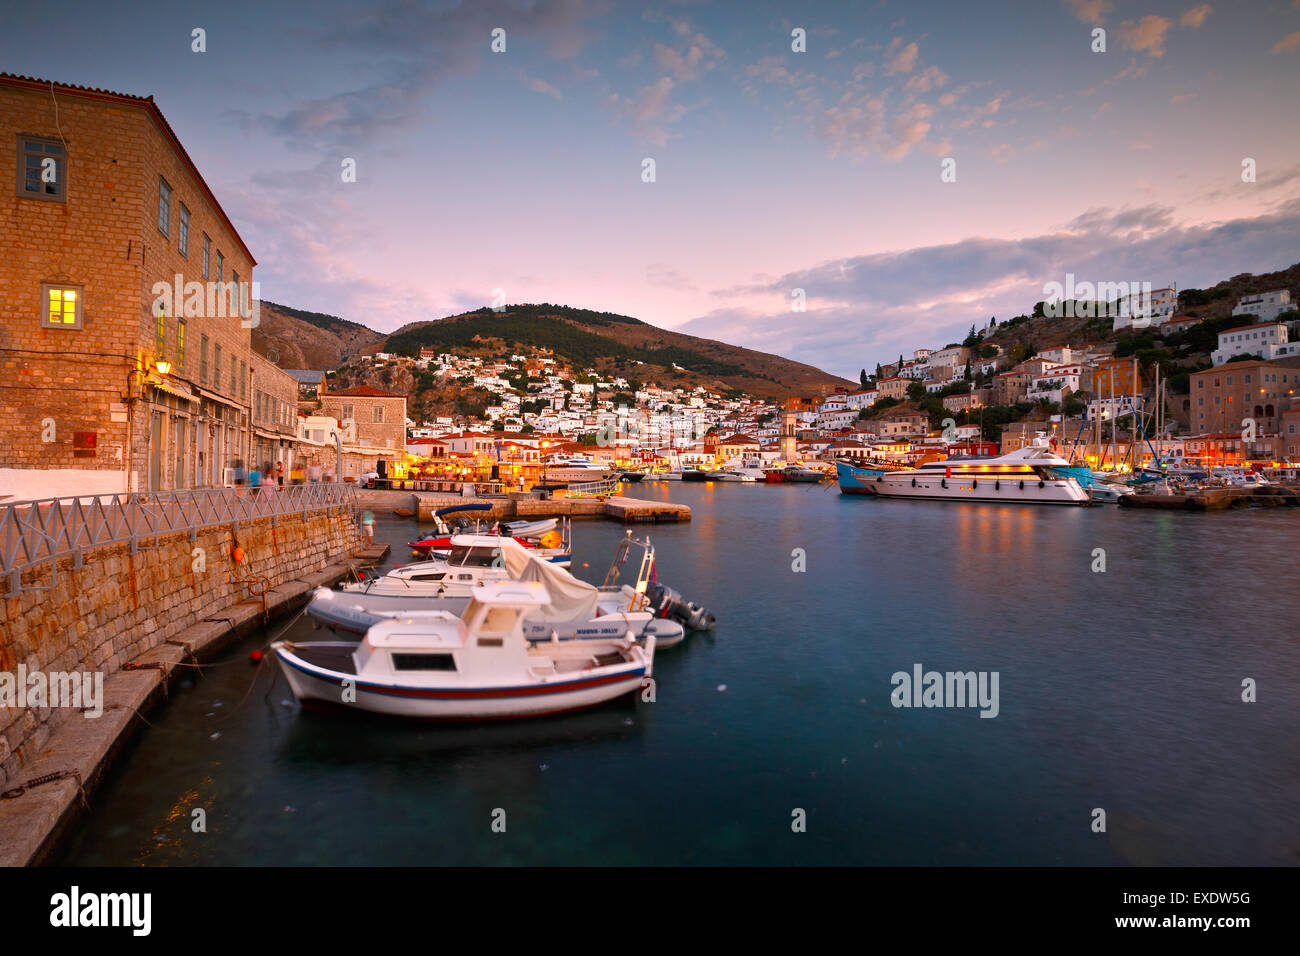 Evening view of the boats in port of Hydra - Stock Image